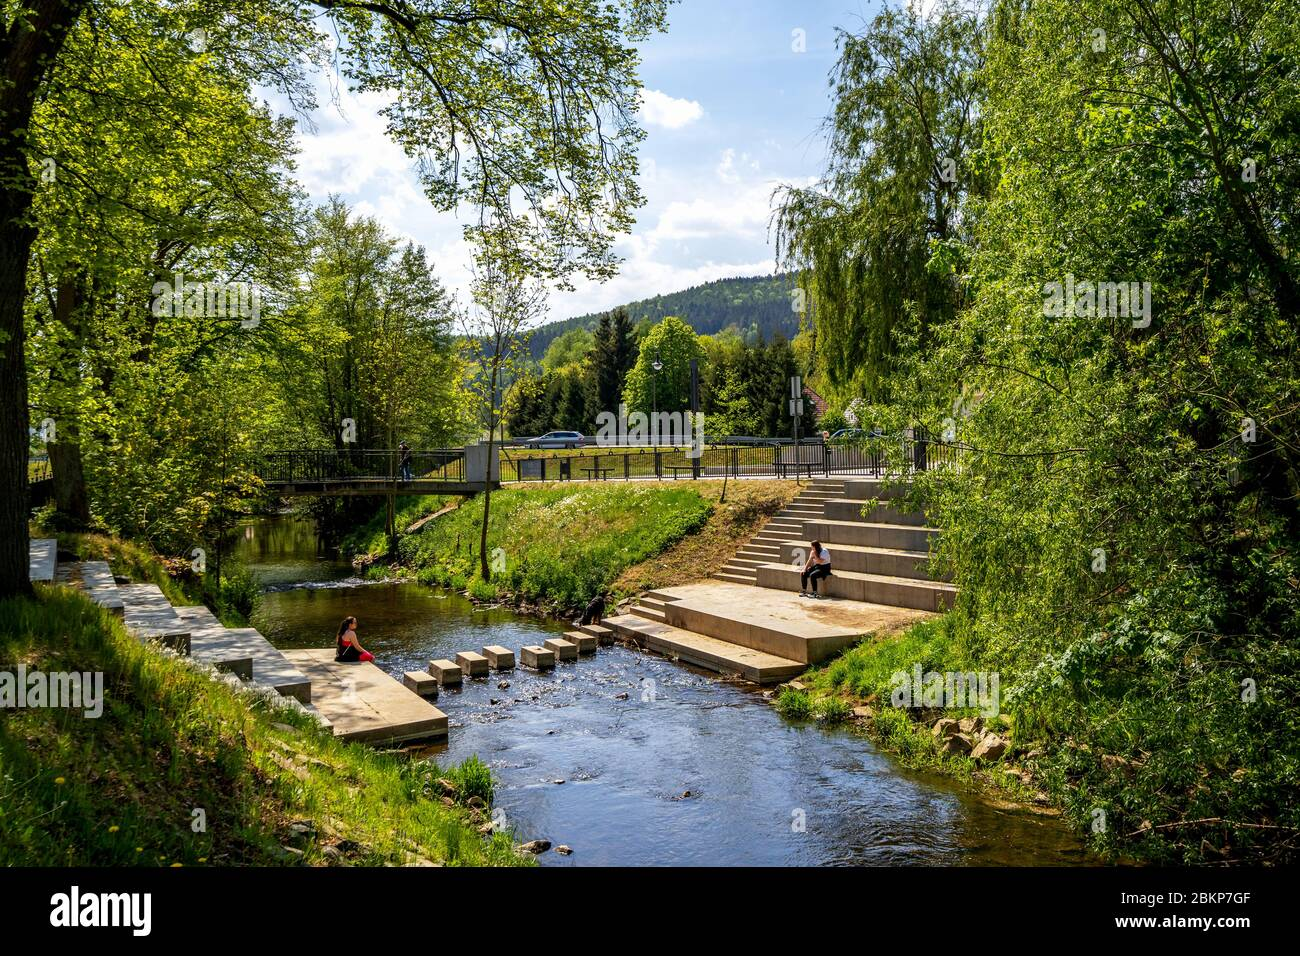 Salm Karlsruhe Page 2 - Bad Soden High Resolution Stock Photography And Images - Alamy